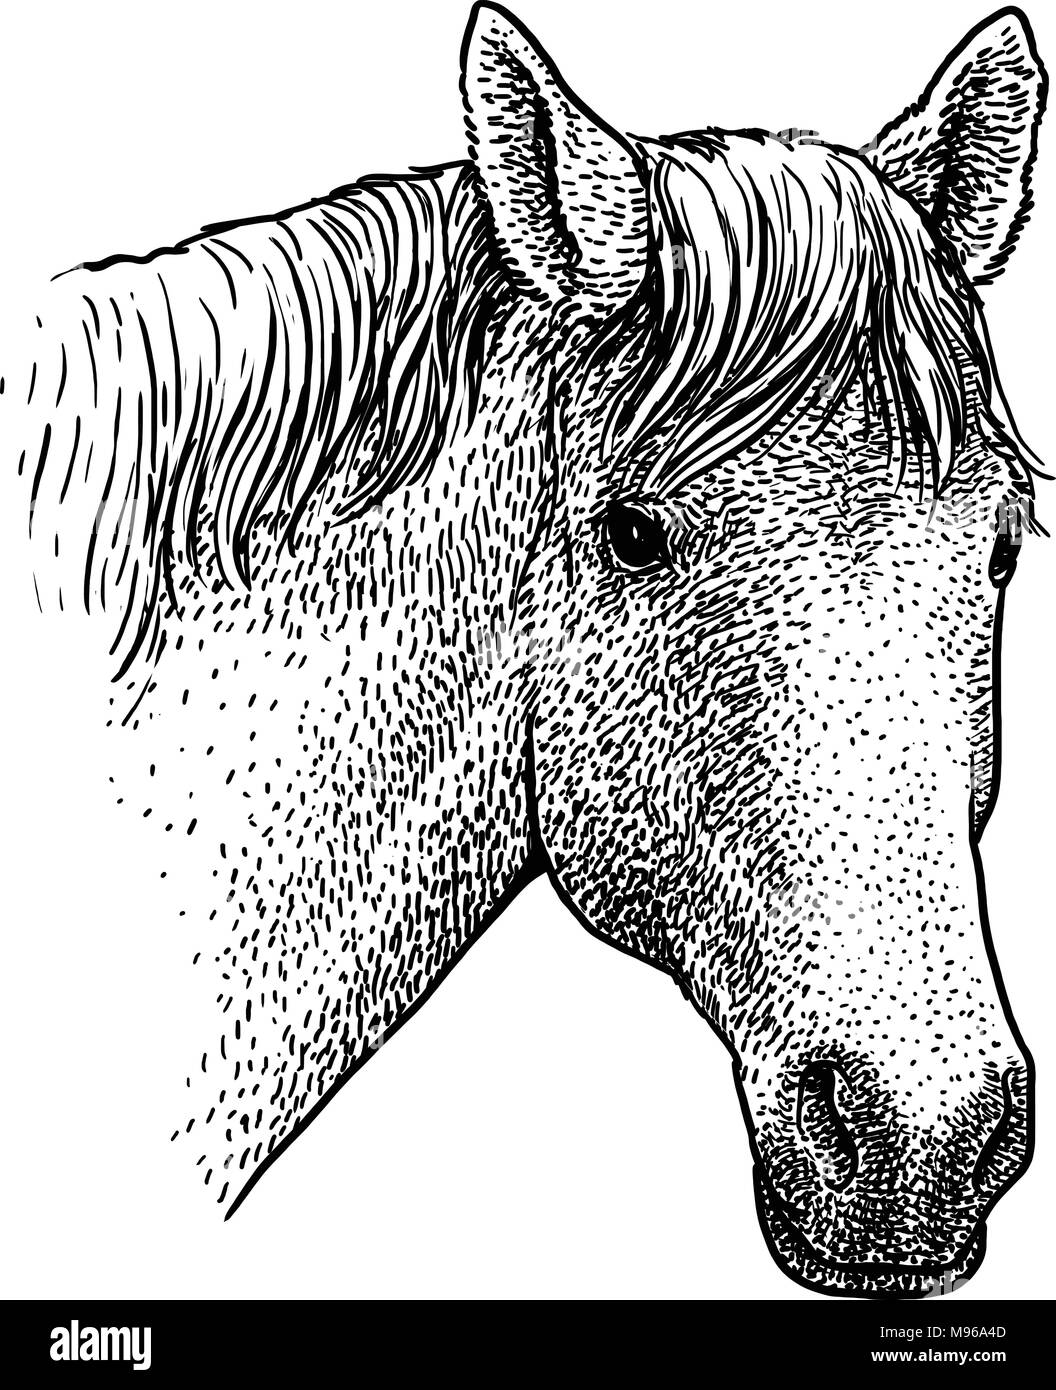 Horse head portrait illustration, drawing, engraving, ink, line art, vector - Stock Vector